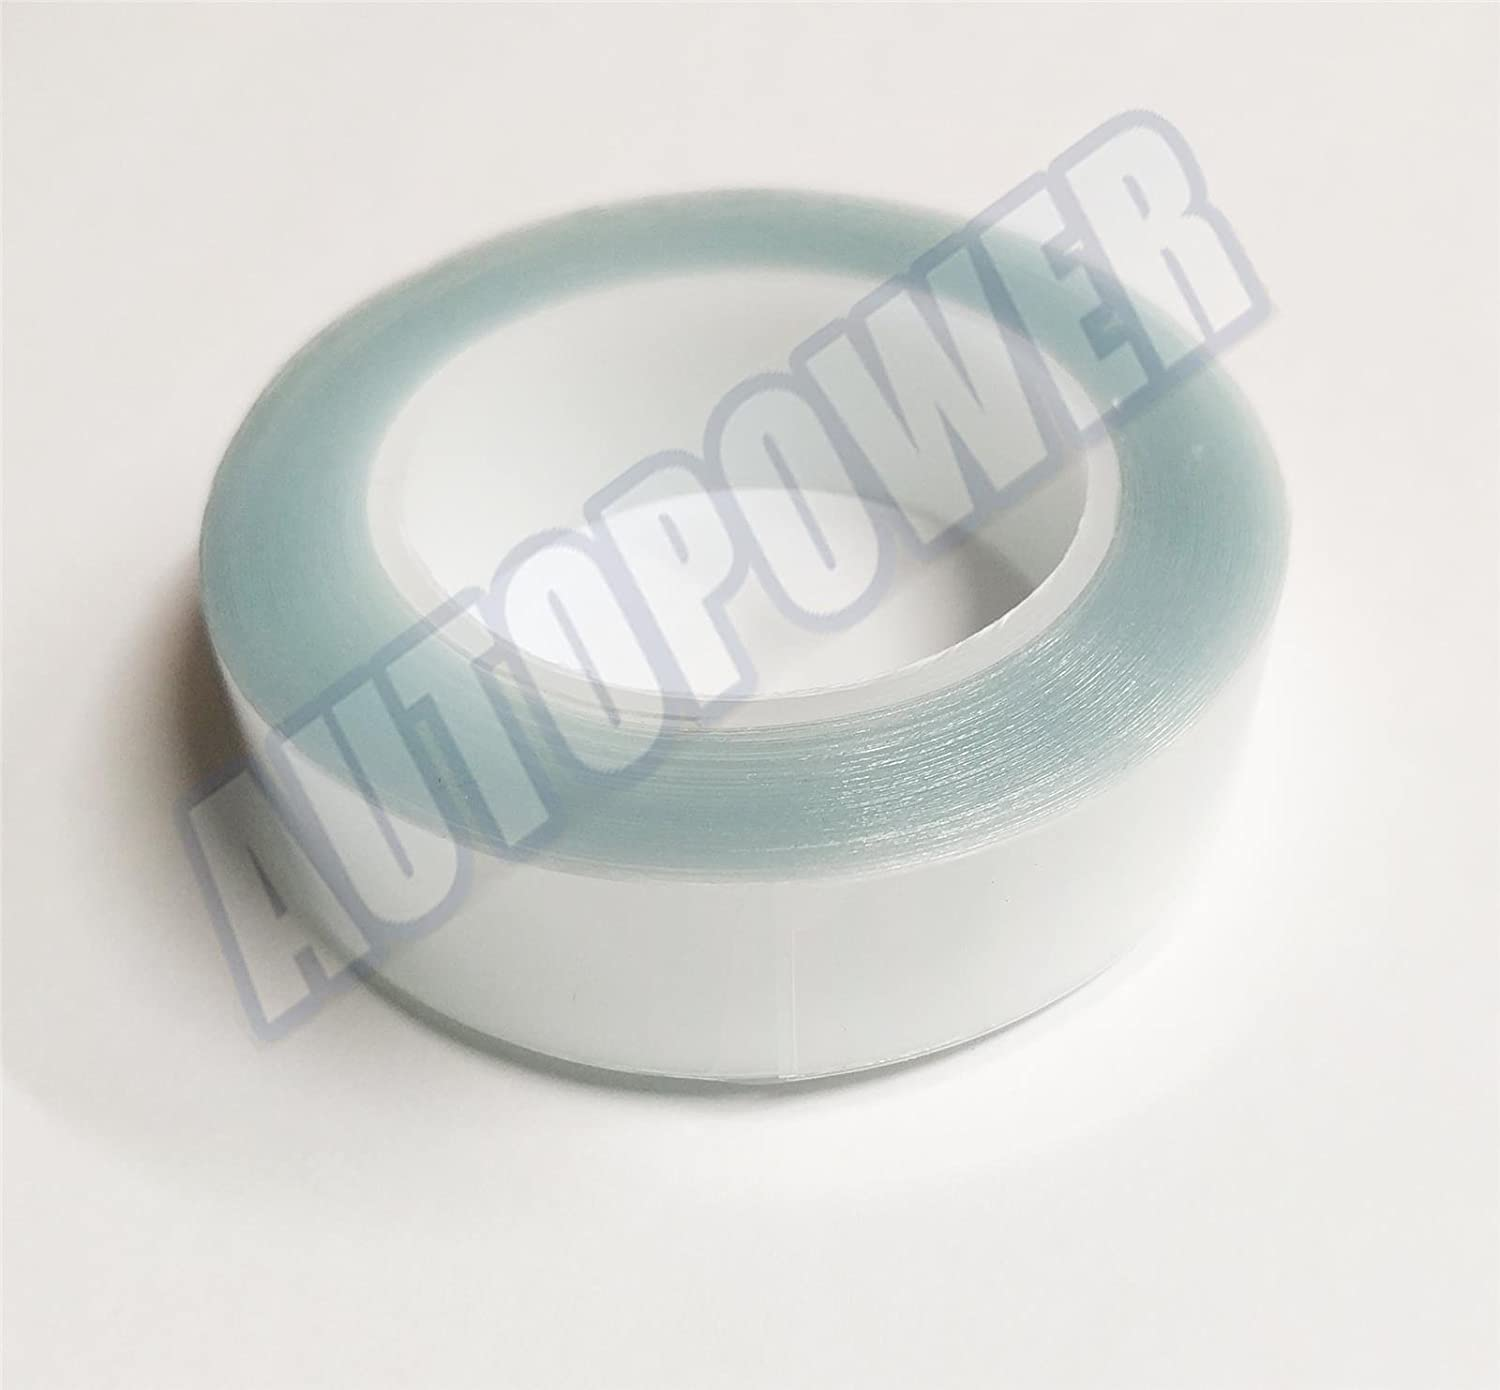 Bump Stop Front Or Rear Door Guard Clip Stick On Protectors Edge Tape Clear